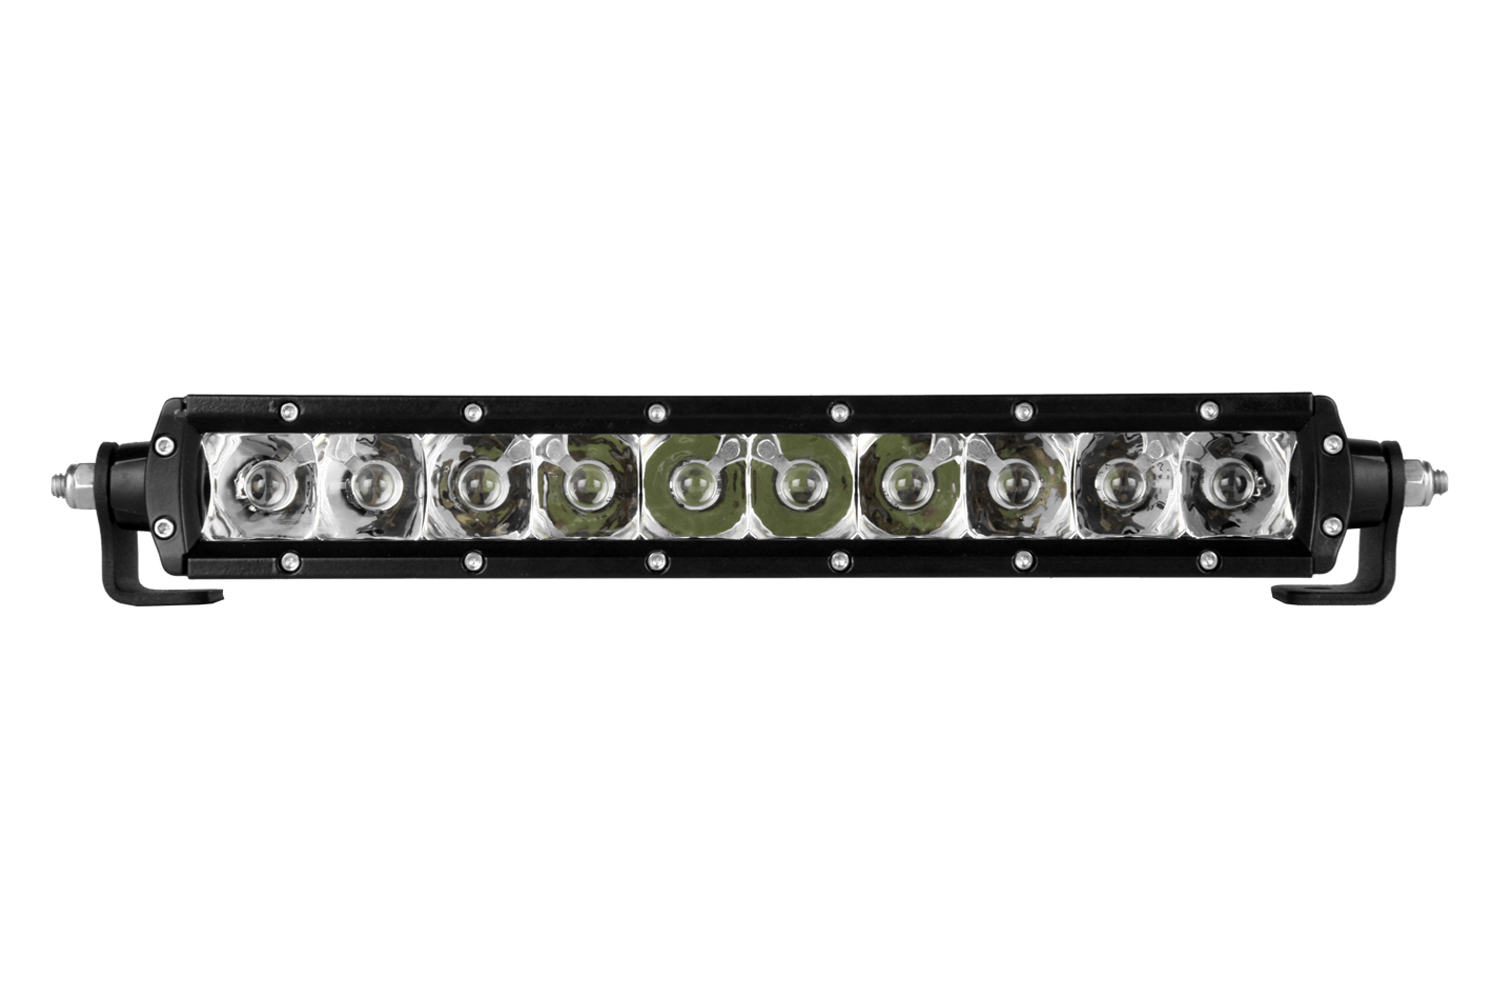 Rigid industries sr series pro 10 led light bar combo 910313 ebay rigid industries sr series pro 10 led light bar combo 910313 mozeypictures Gallery